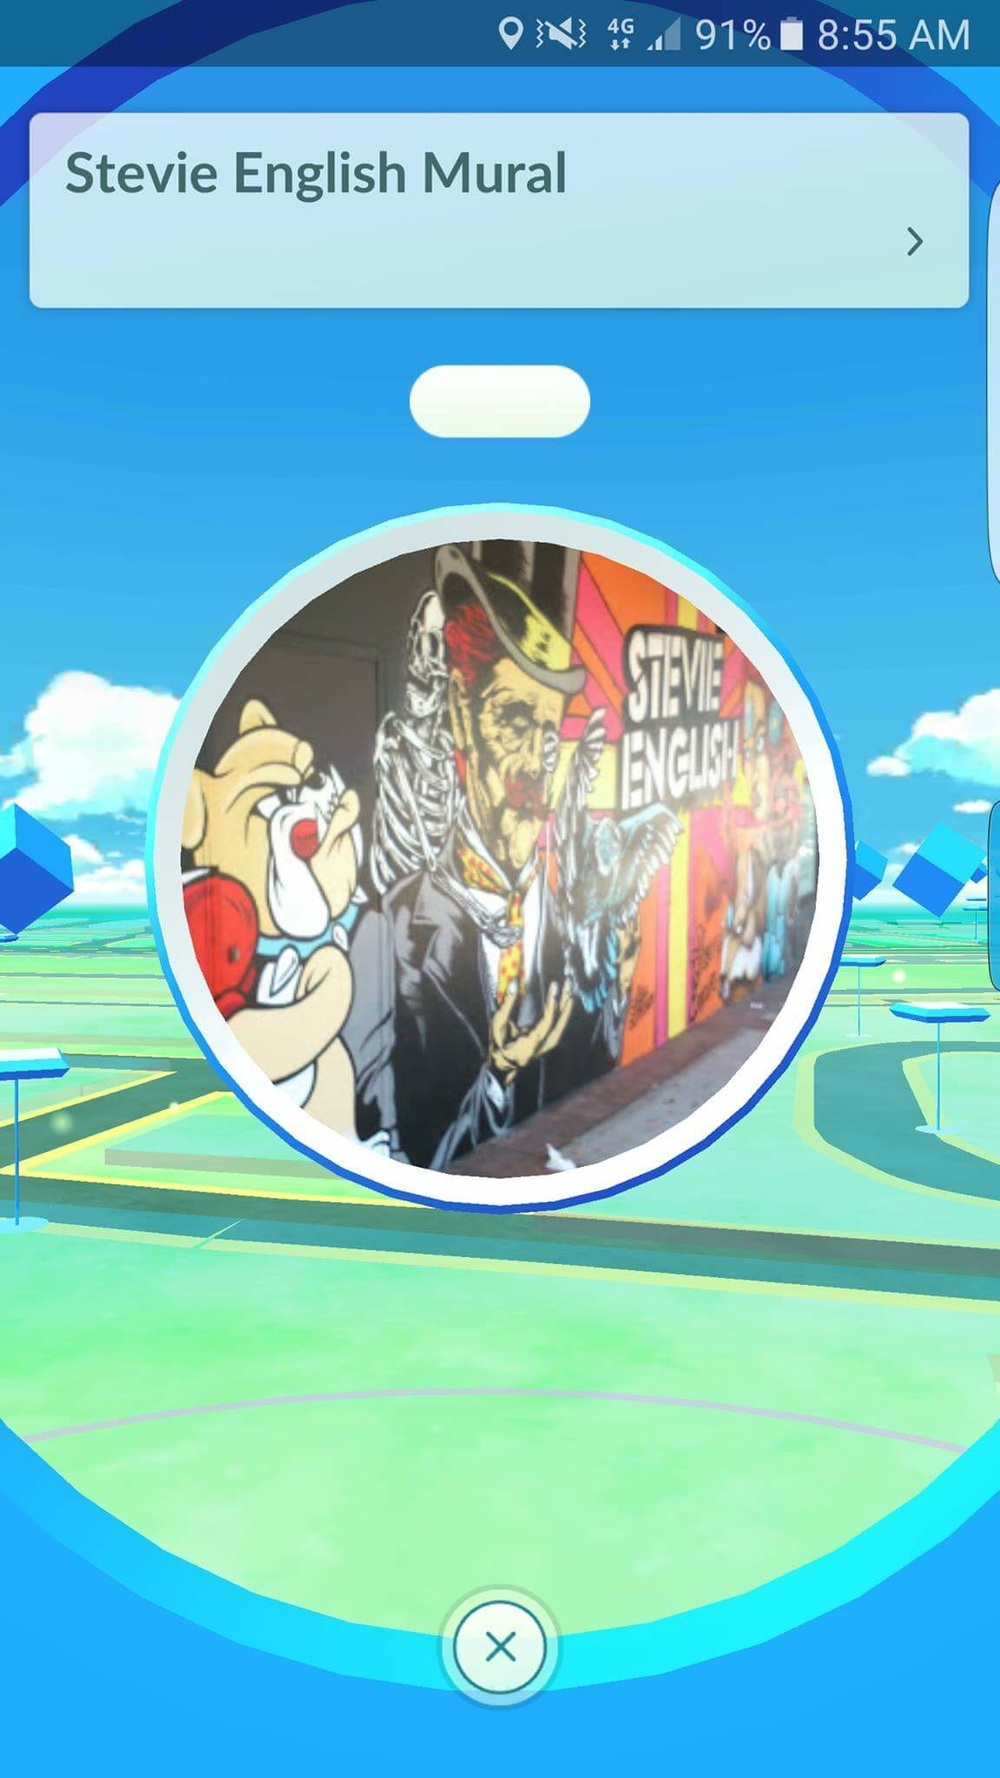 Our mural is a pokestop